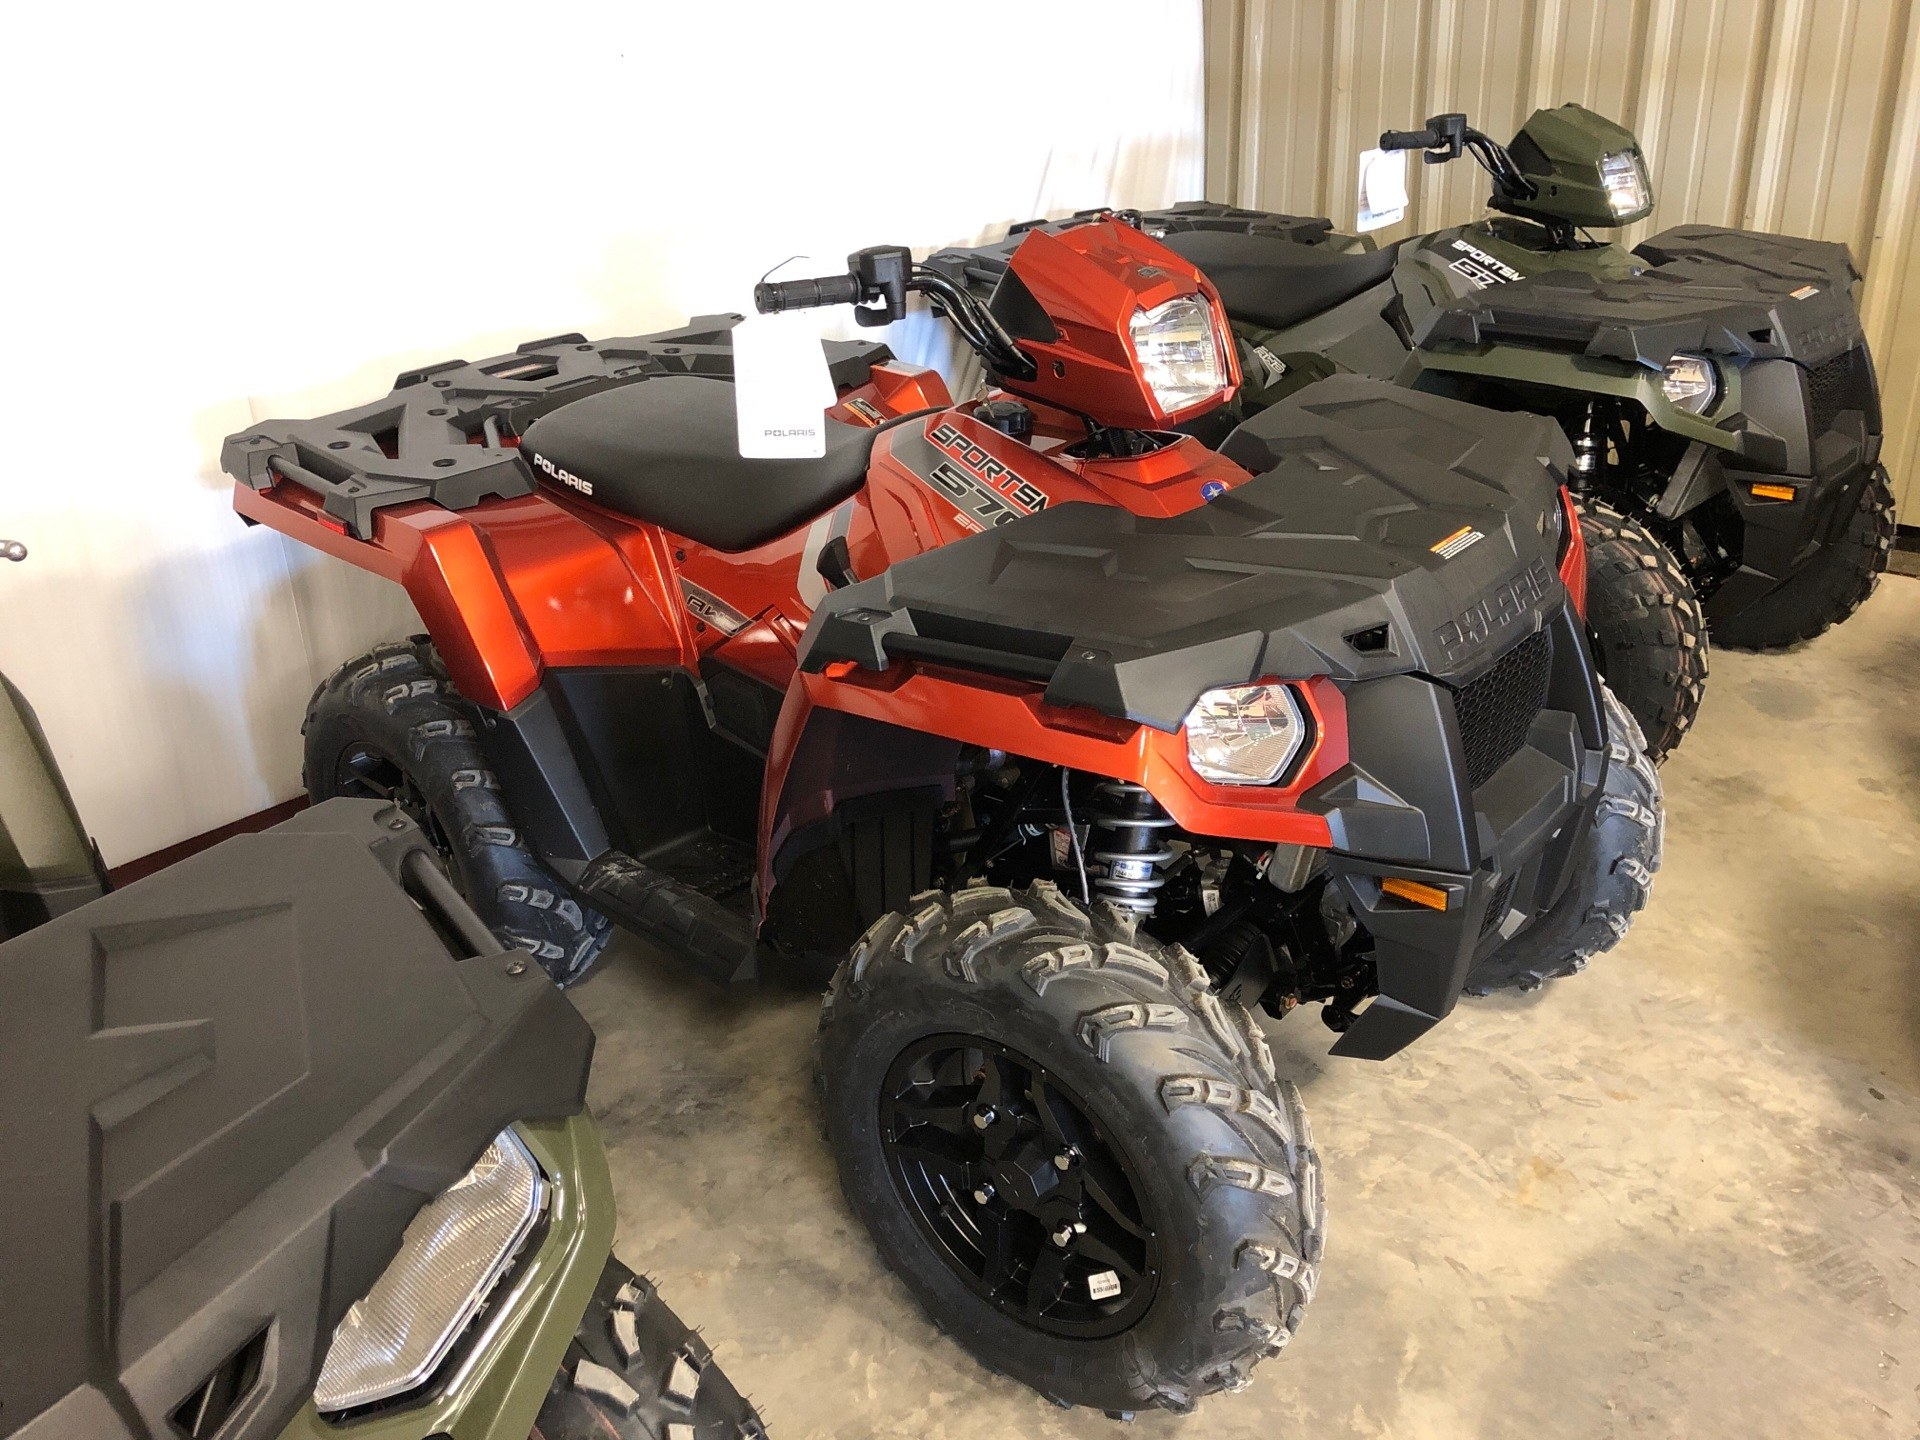 2020 Polaris Sportsman 570 Premium in Newberry, South Carolina - Photo 1